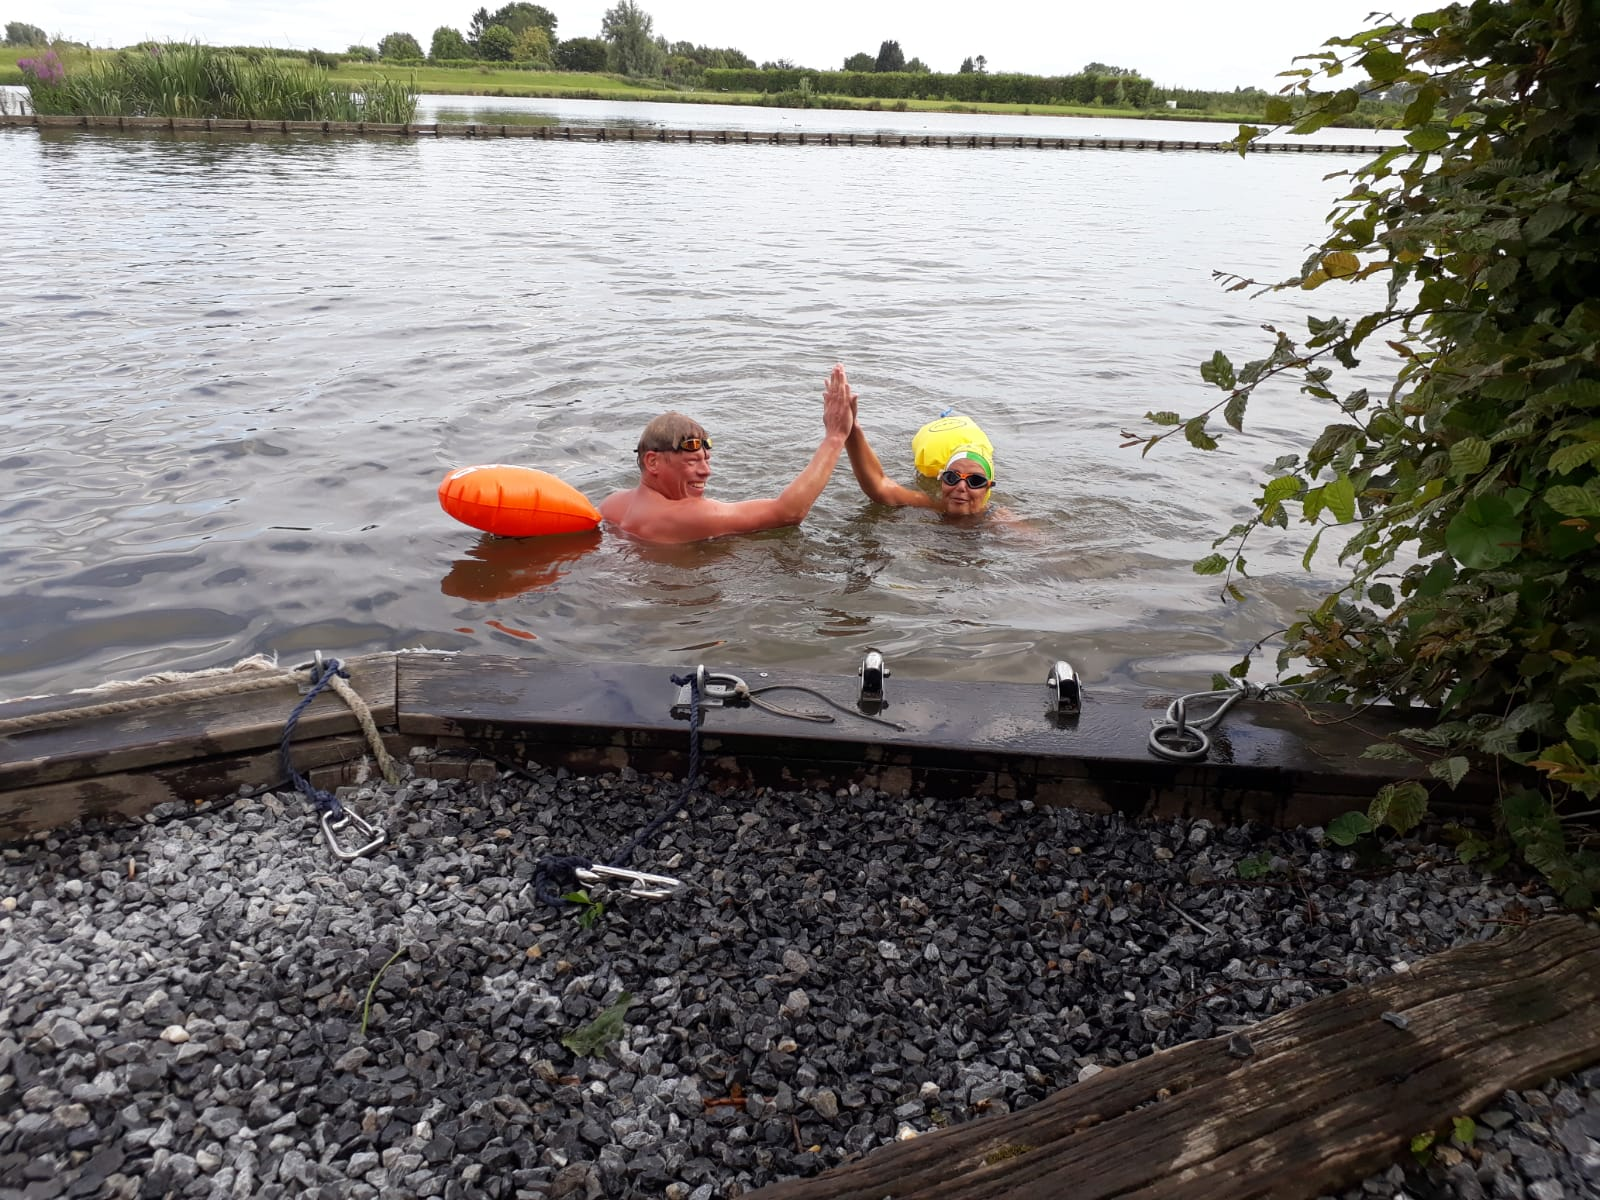 22 juli 2020 - Slow Linge triathlon # 25